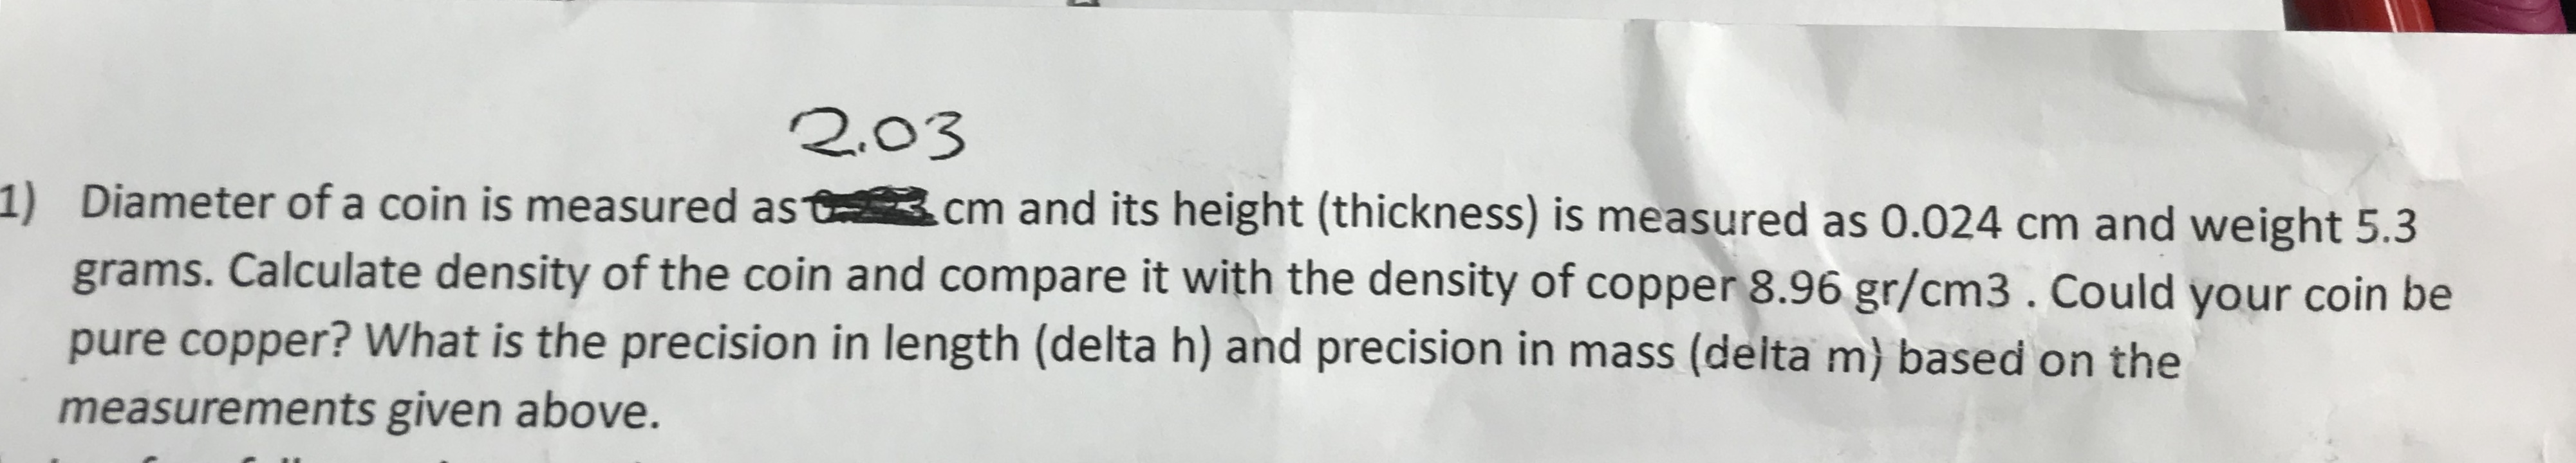 2.03 ) Diameter of a coin is measured ast.cm and its height (thickness) is measured as 0.024 cm and weight 5.3 grams. Calculate density of the coin and compare it with the density of copper 8.96 gr/cm3. Could your coin be pure copper? What is the precision in length (delta h) and precision in mass (delta m) based on the measurements given above.